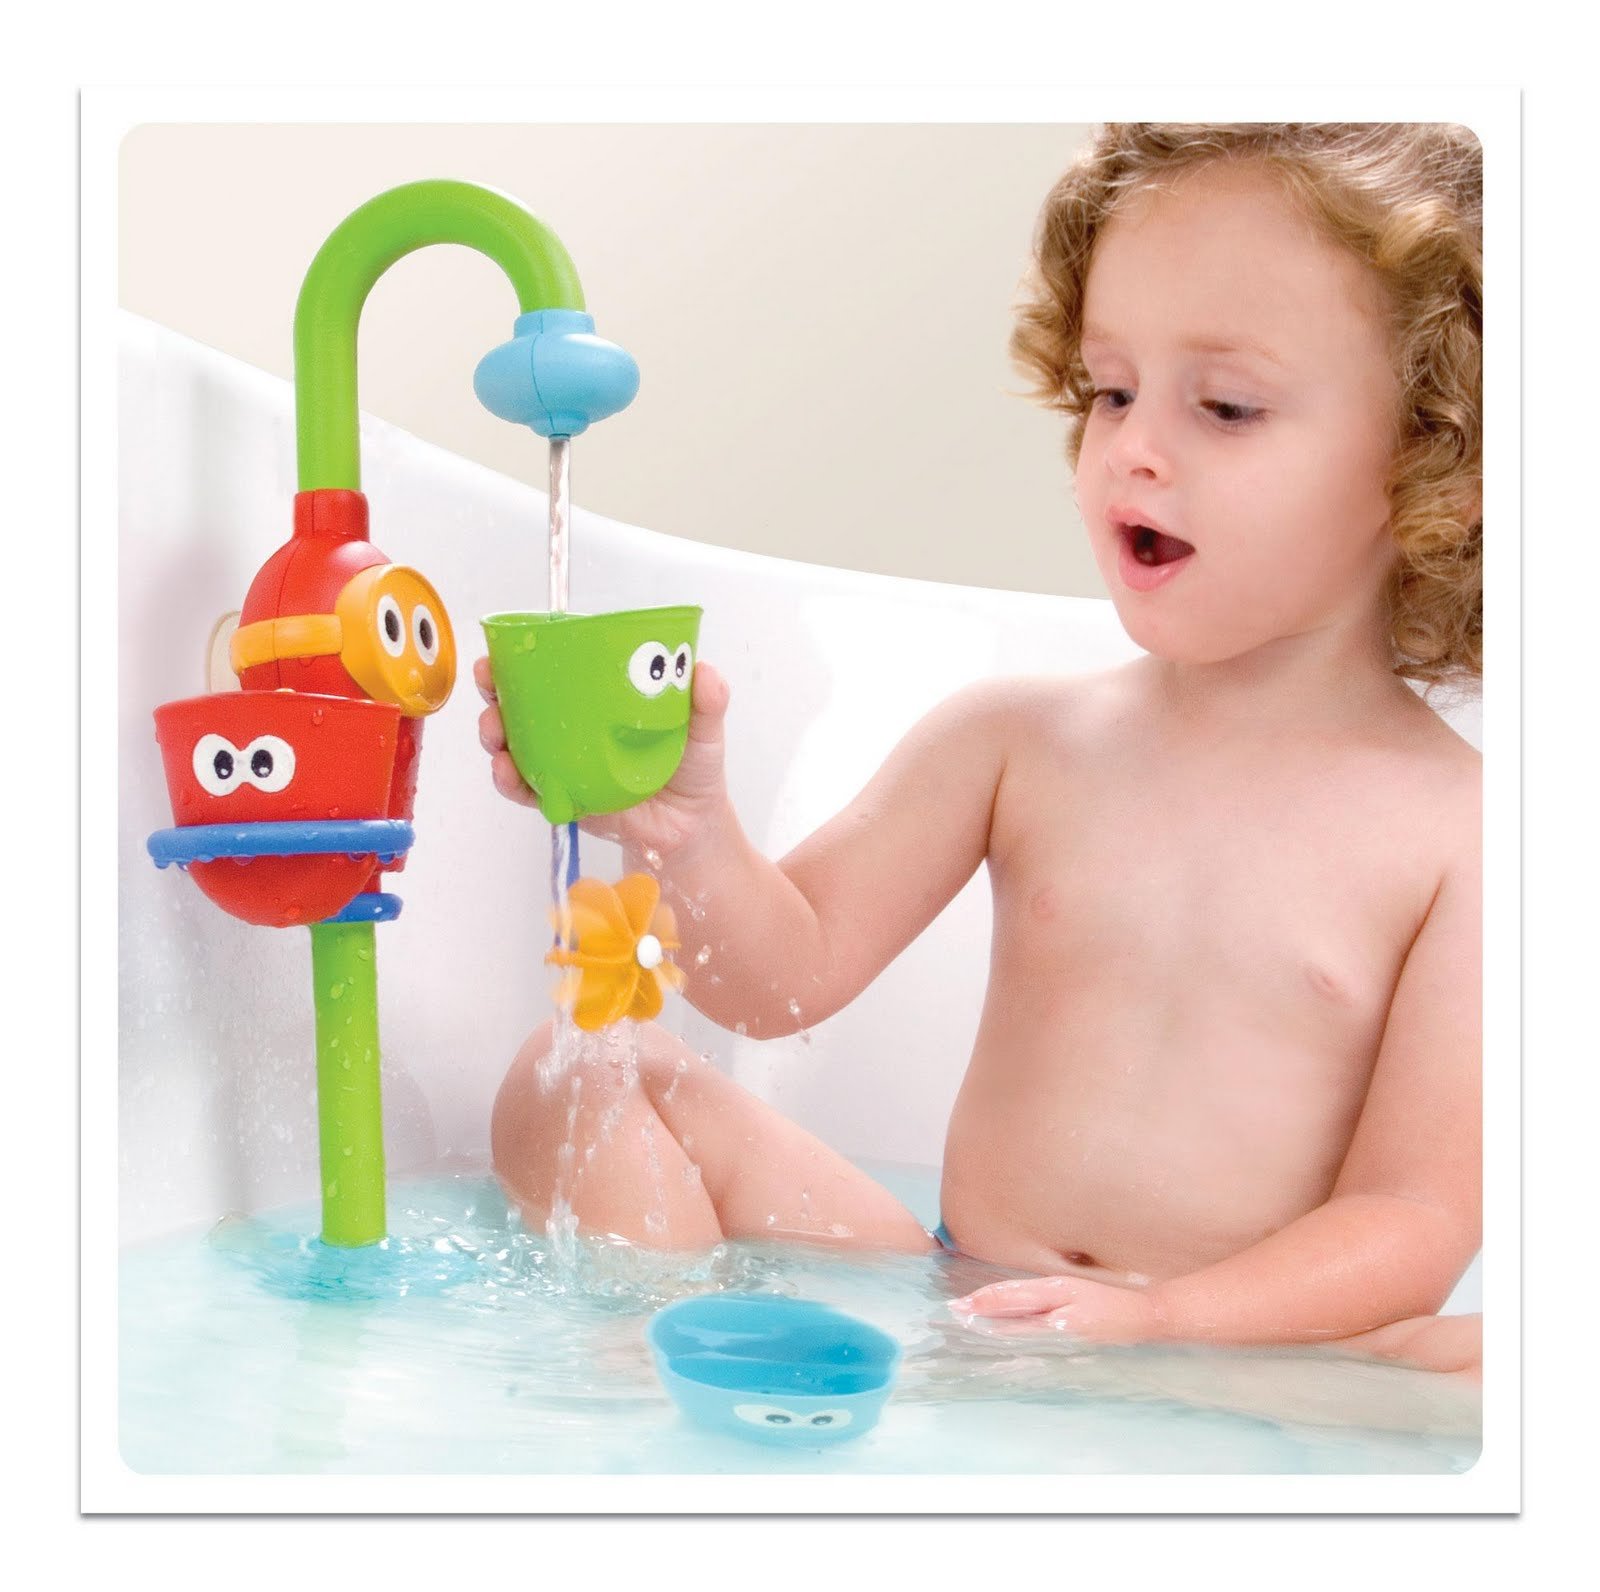 Suggestions for fun bath toys BabyCenter